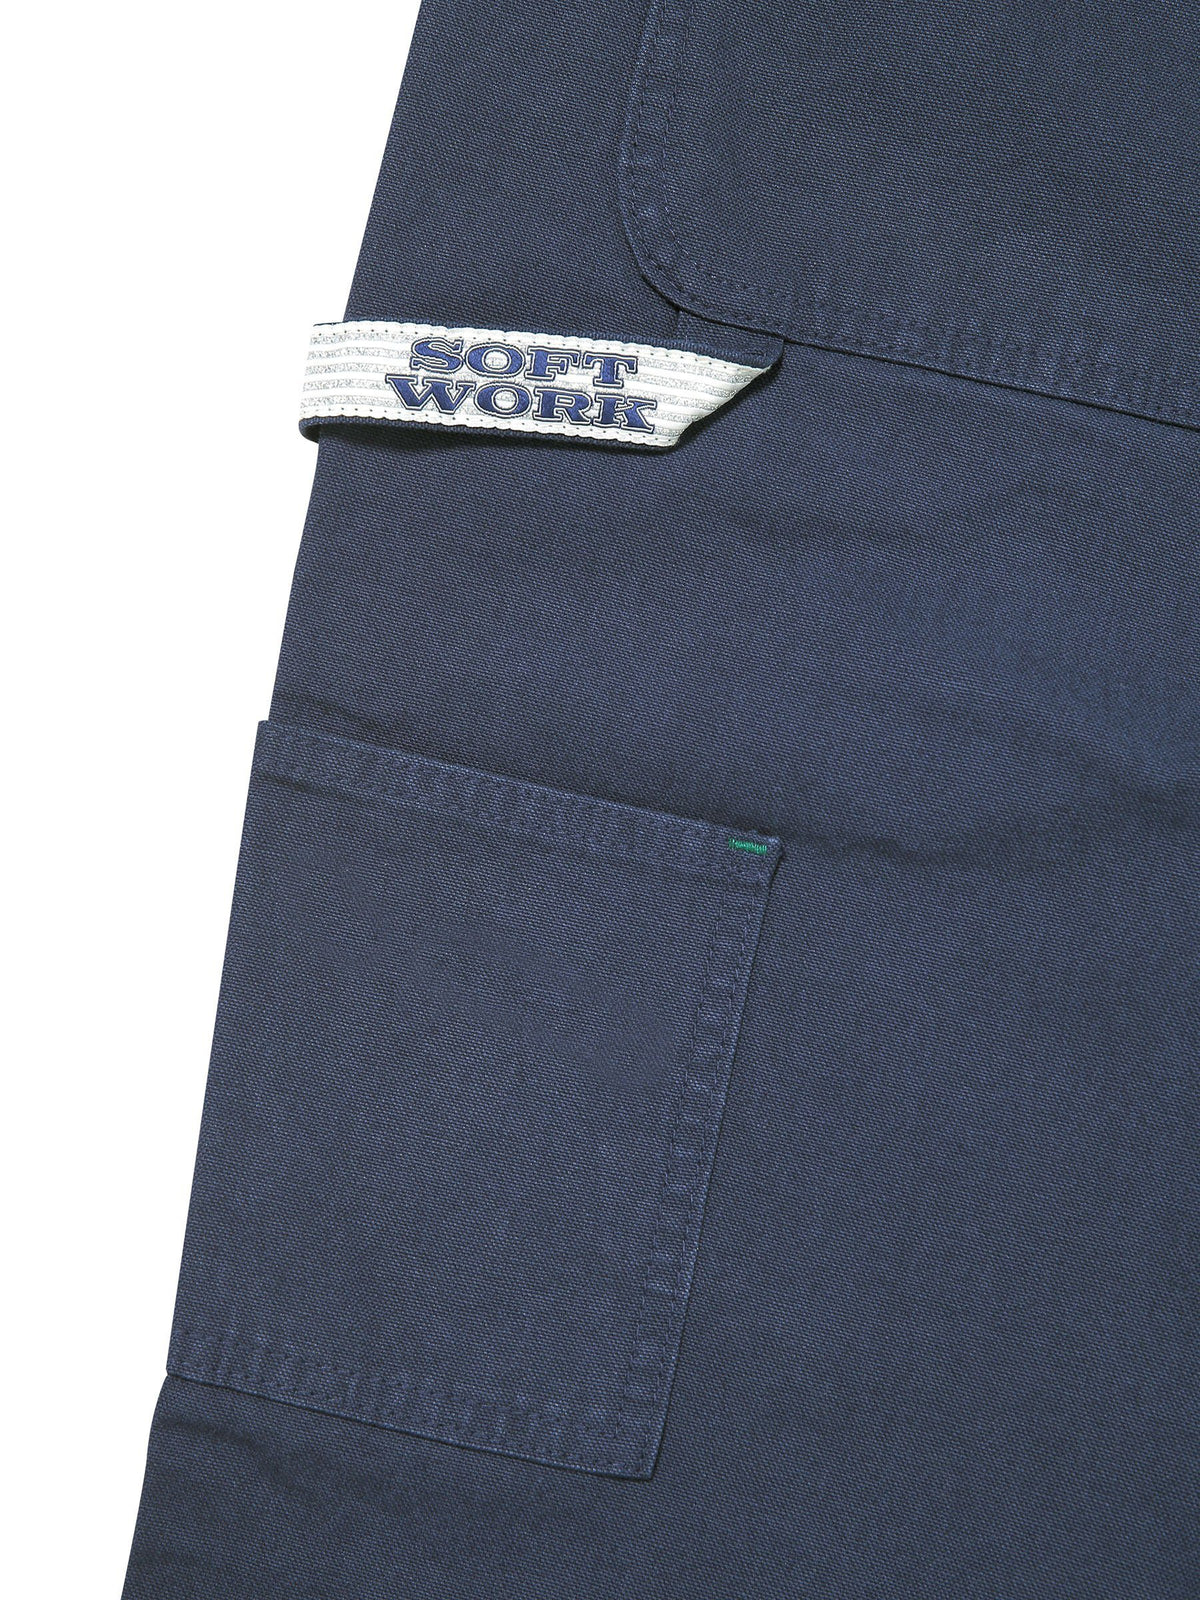 S.W. Carpenter Pant - thisisneverthat